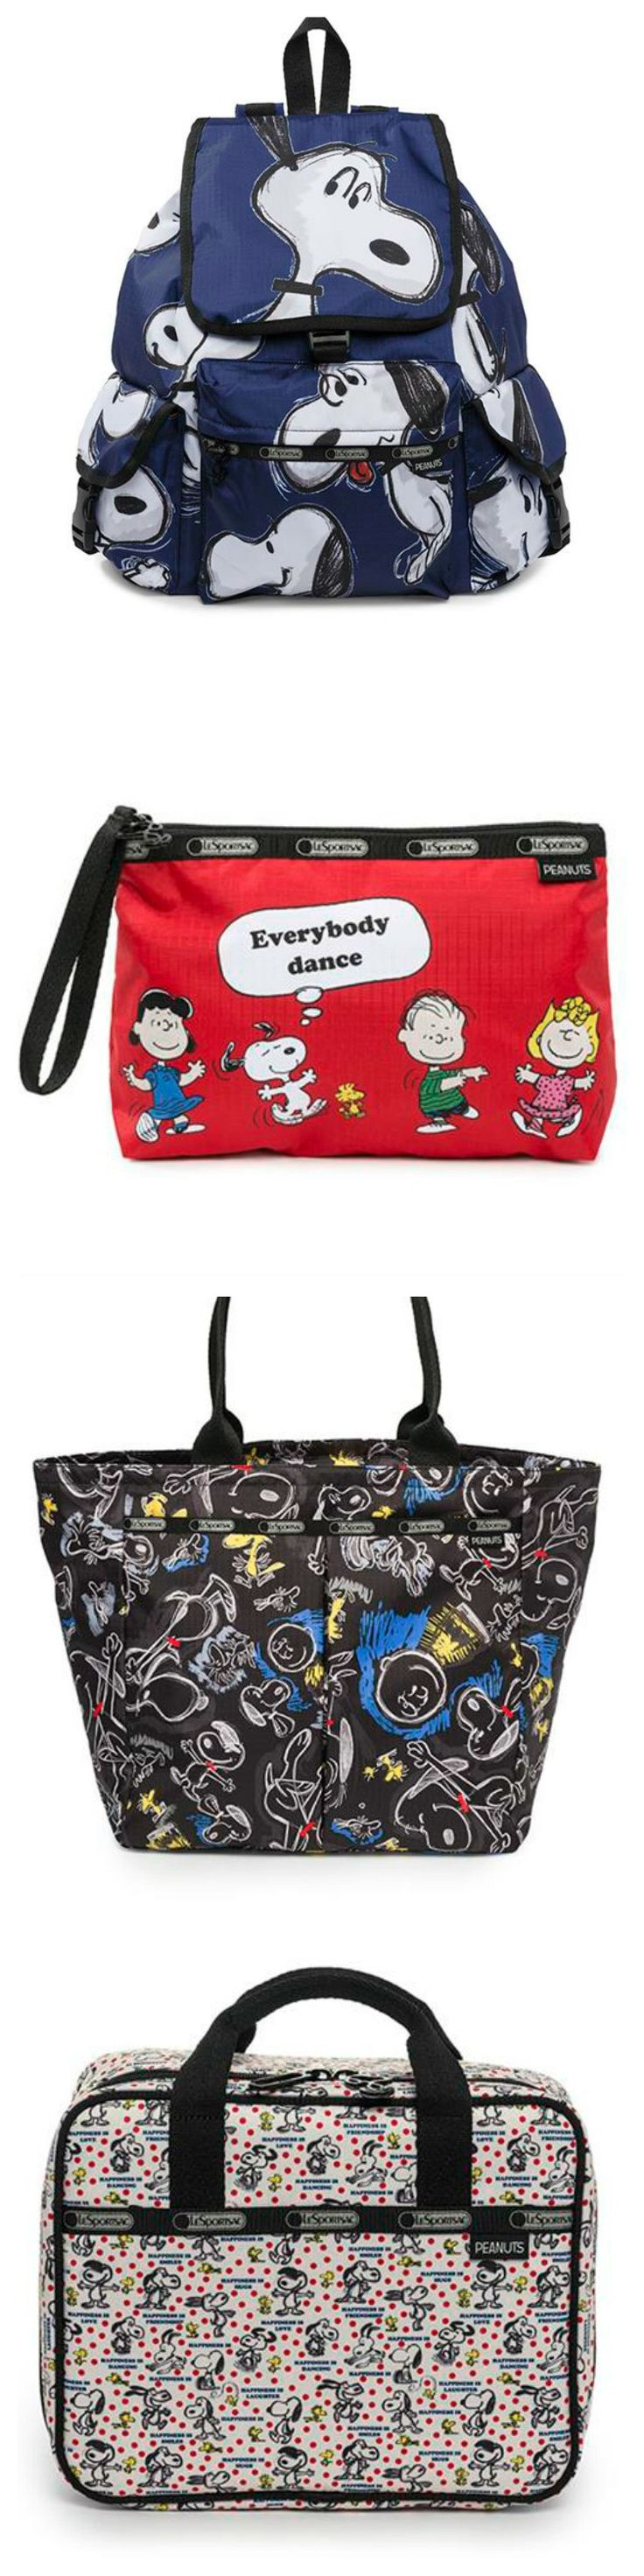 Time for a new Snoopy bag? Read my review of Peanuts LeSportsac Bags and see more styles at CollectPeanuts.com.